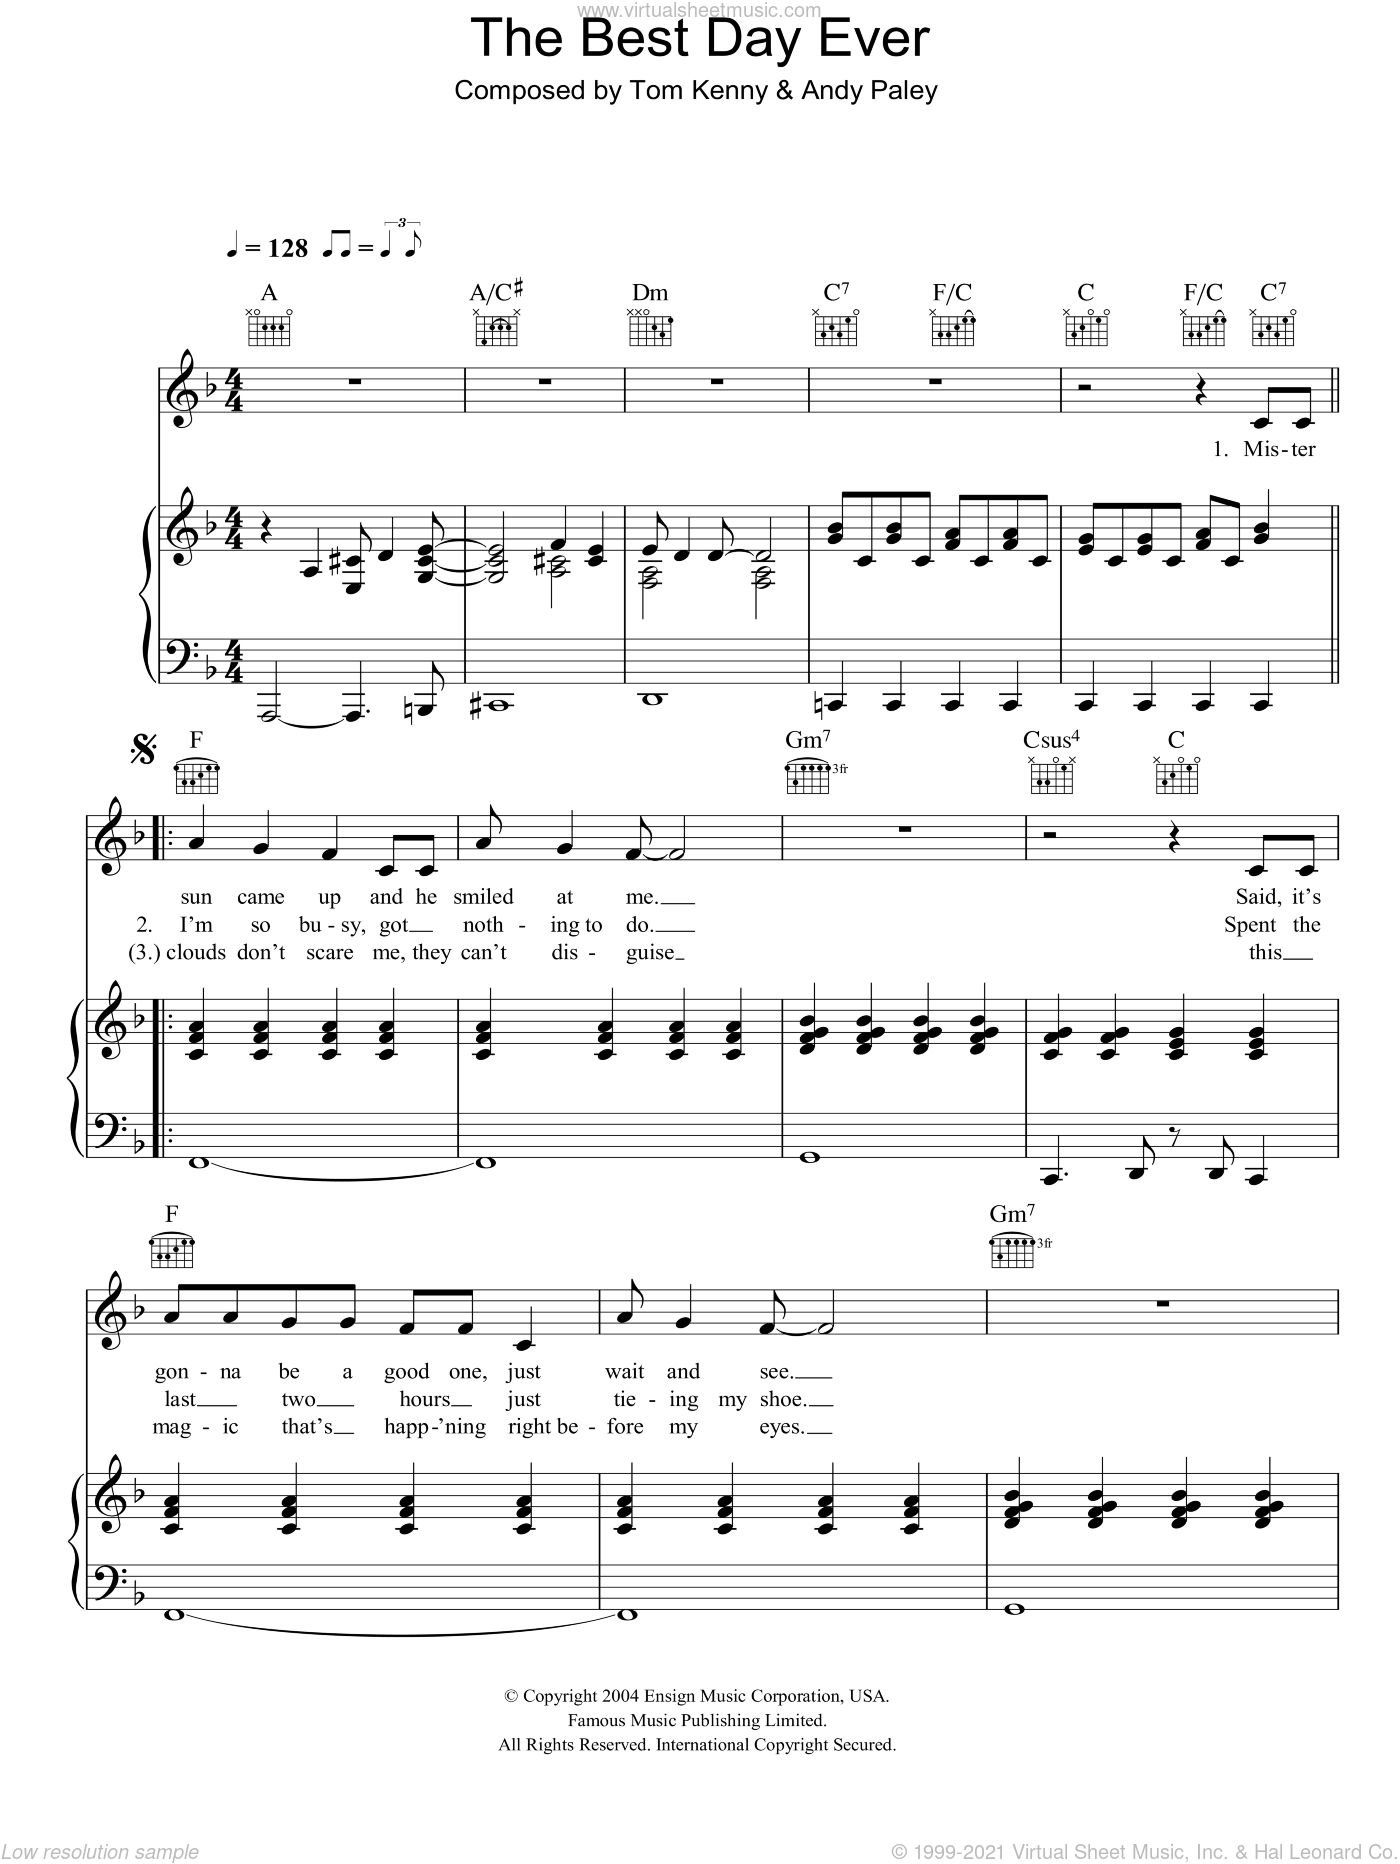 The Best Day Ever sheet music for voice, piano or guitar by SpongeBob SquarePants, Andy Paley and Tom Kenny, intermediate. Score Image Preview.